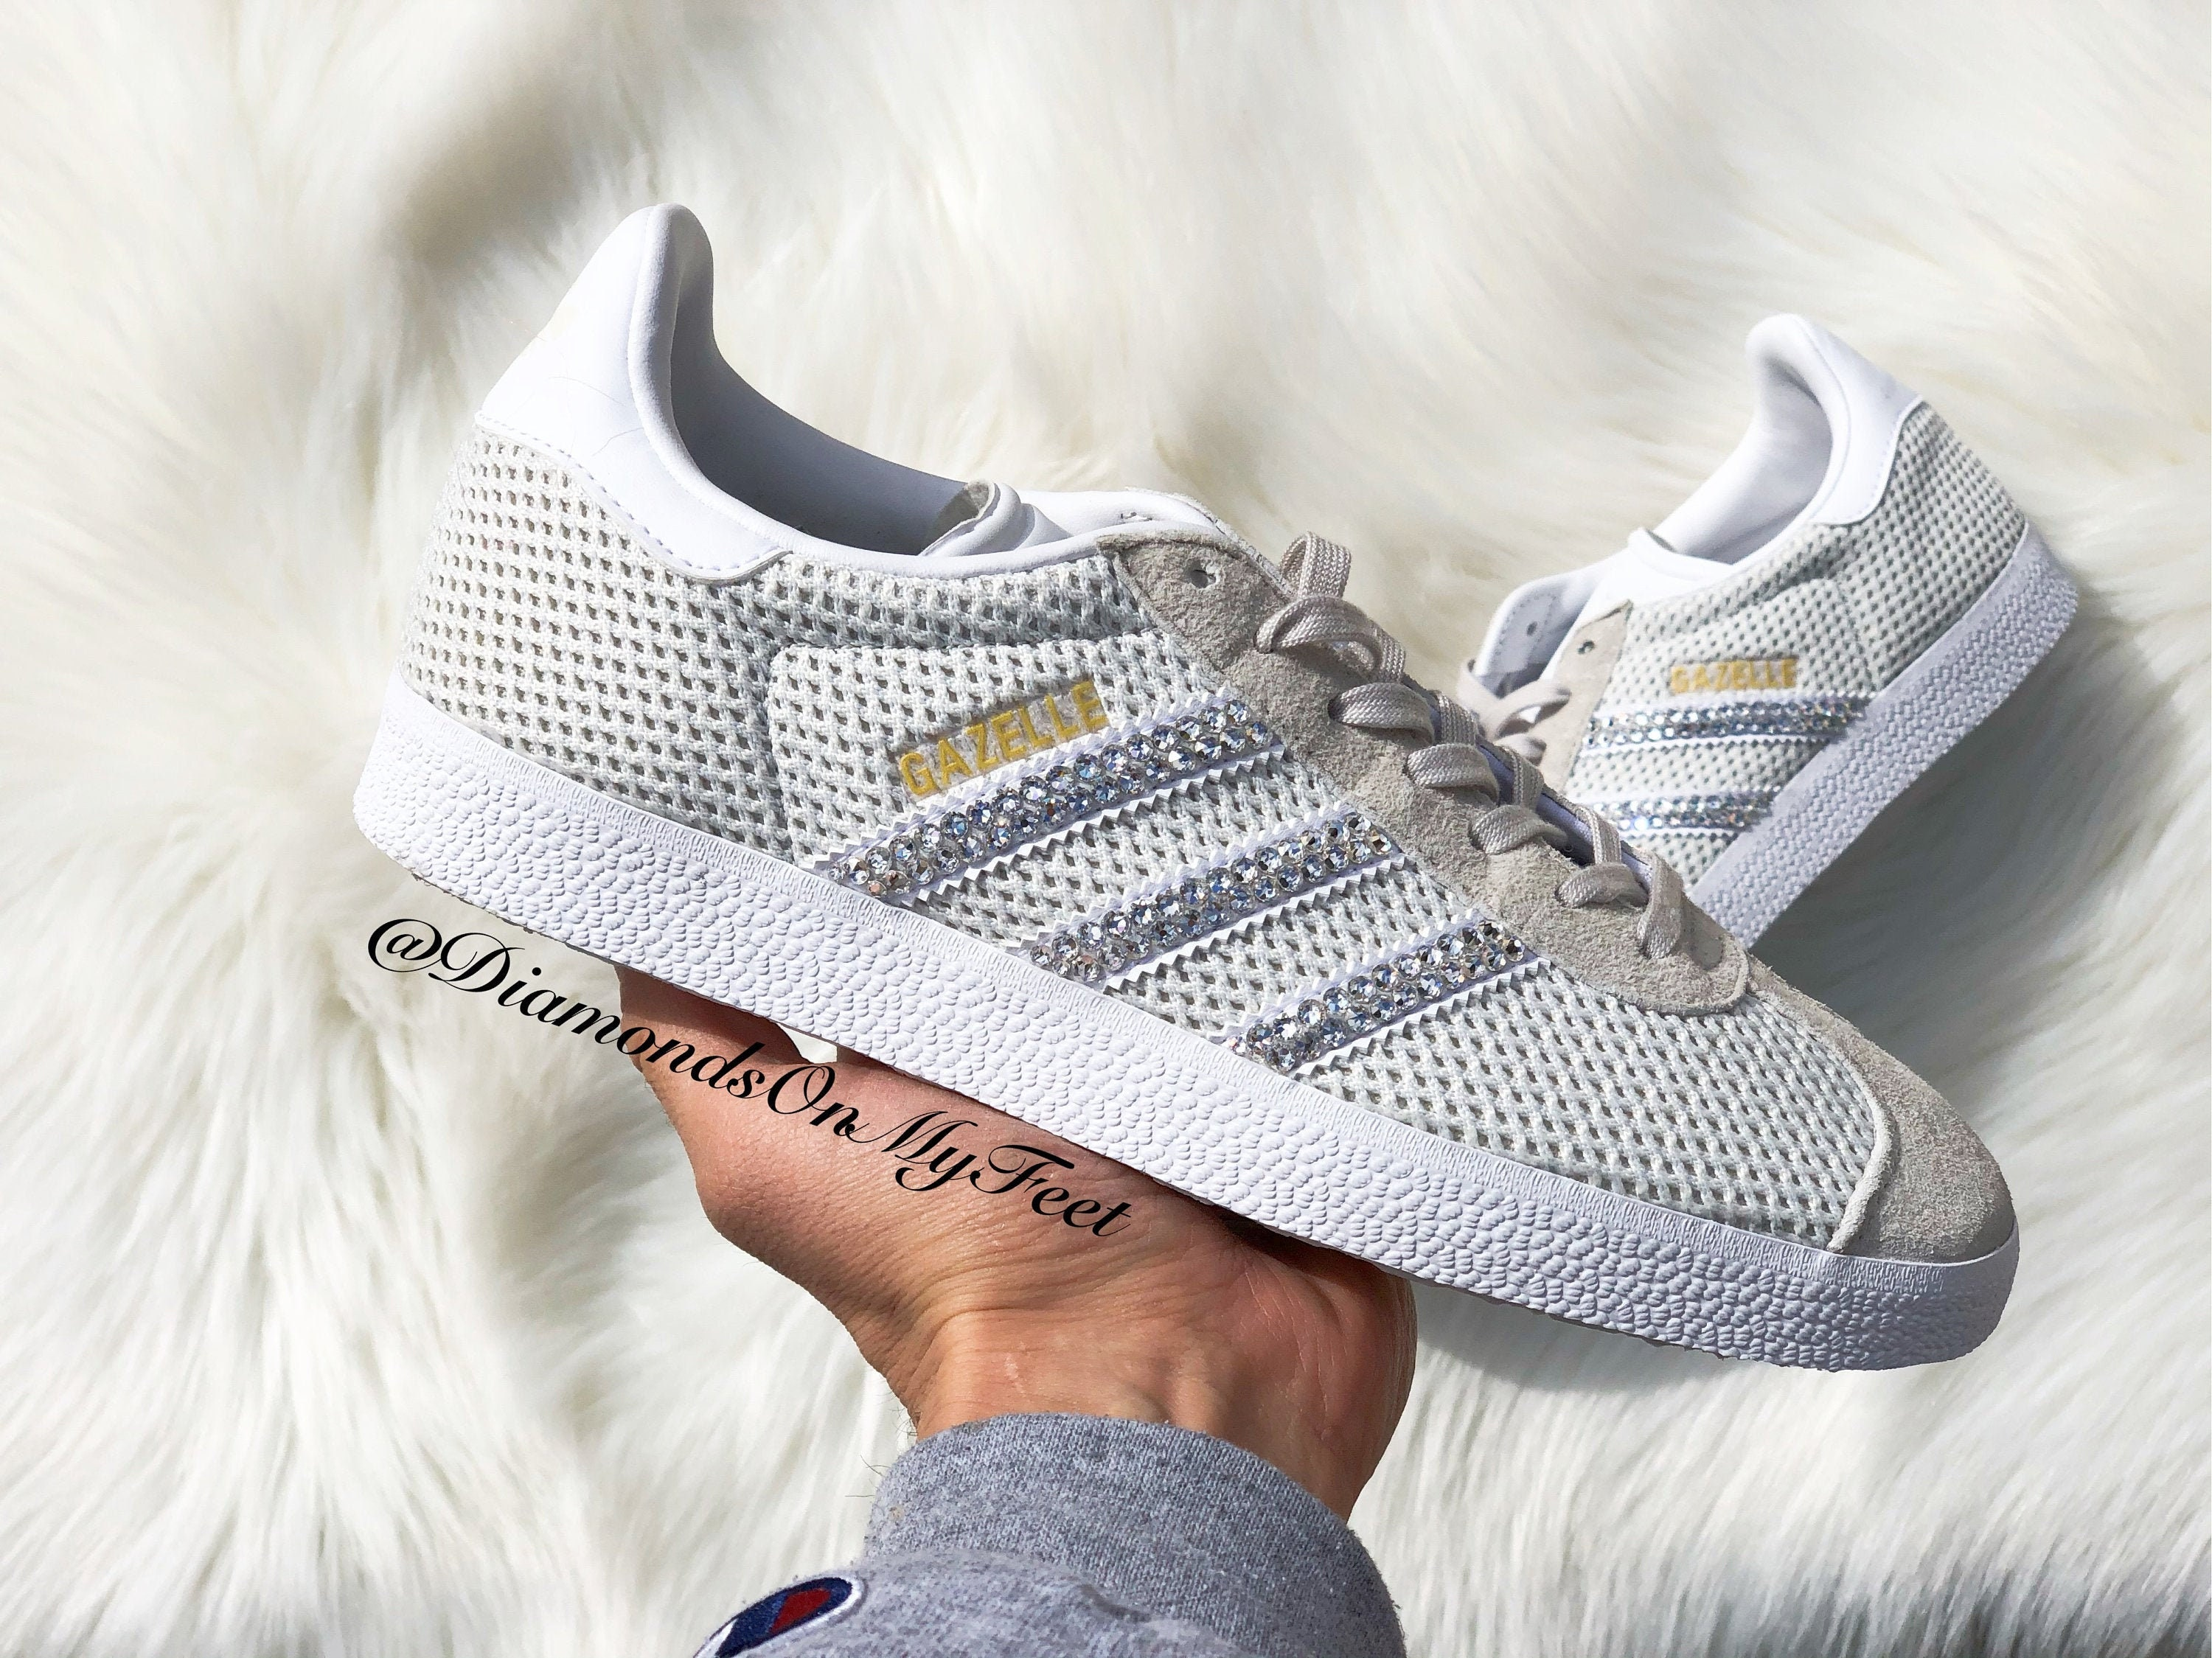 Size 7 - Swarovski Womens Adidas Gazelle Light Brown Sneakers Blinged Out With Authentic Clear Swarovski Crystals Custom Bling Adidas Shoes